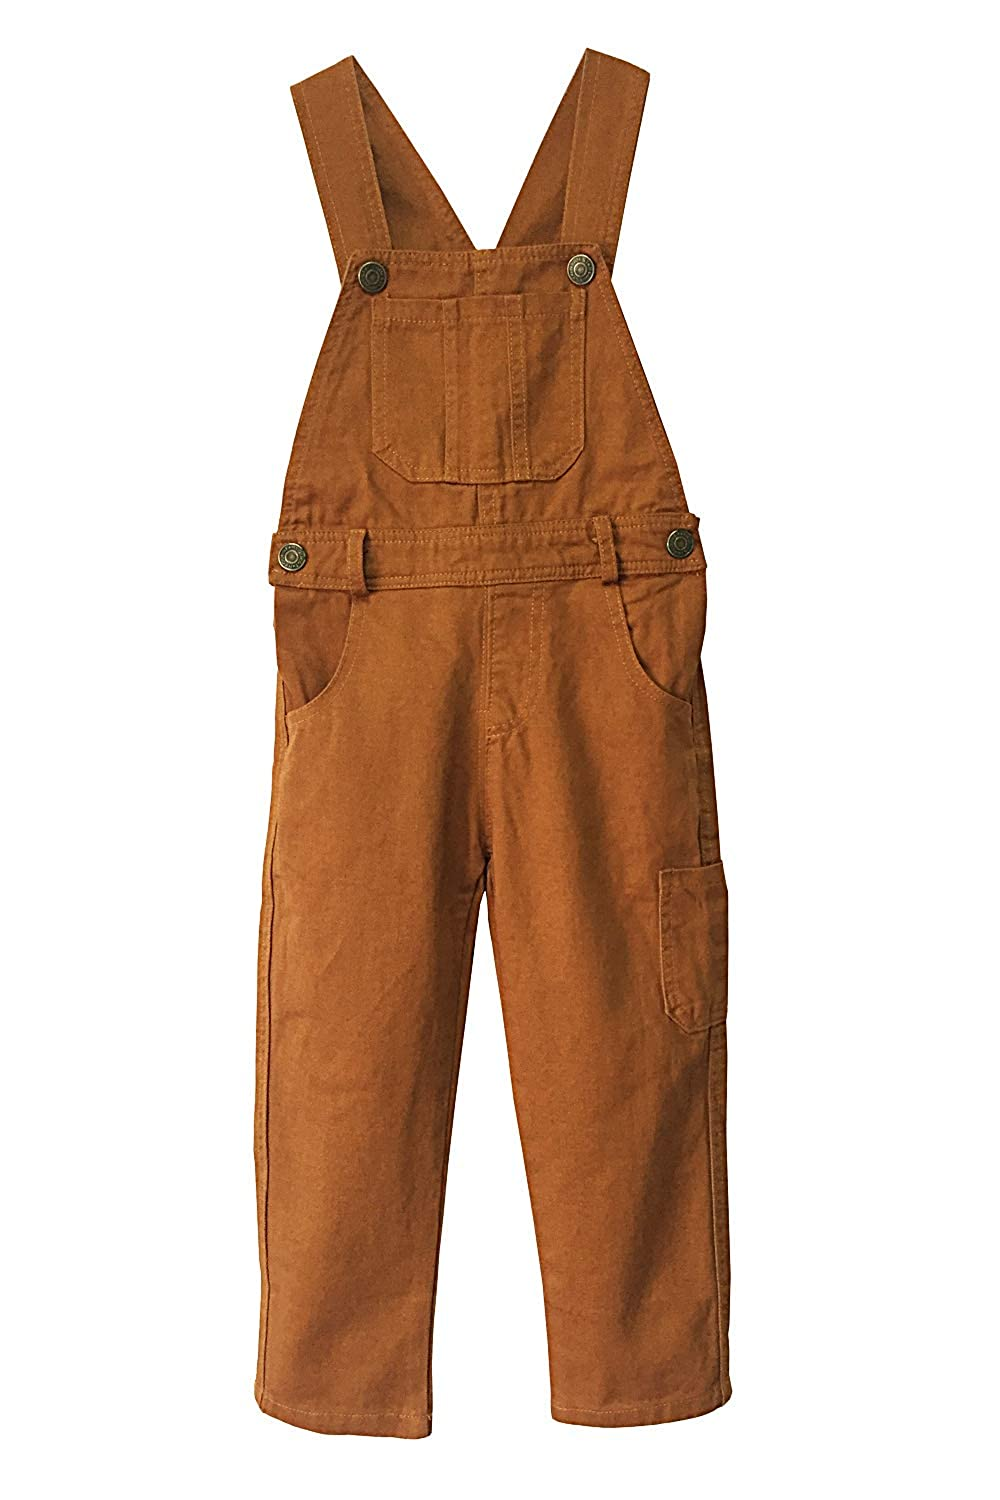 Grandwish Boys Brown Canvas Dungarees Unisex 3-10 Years